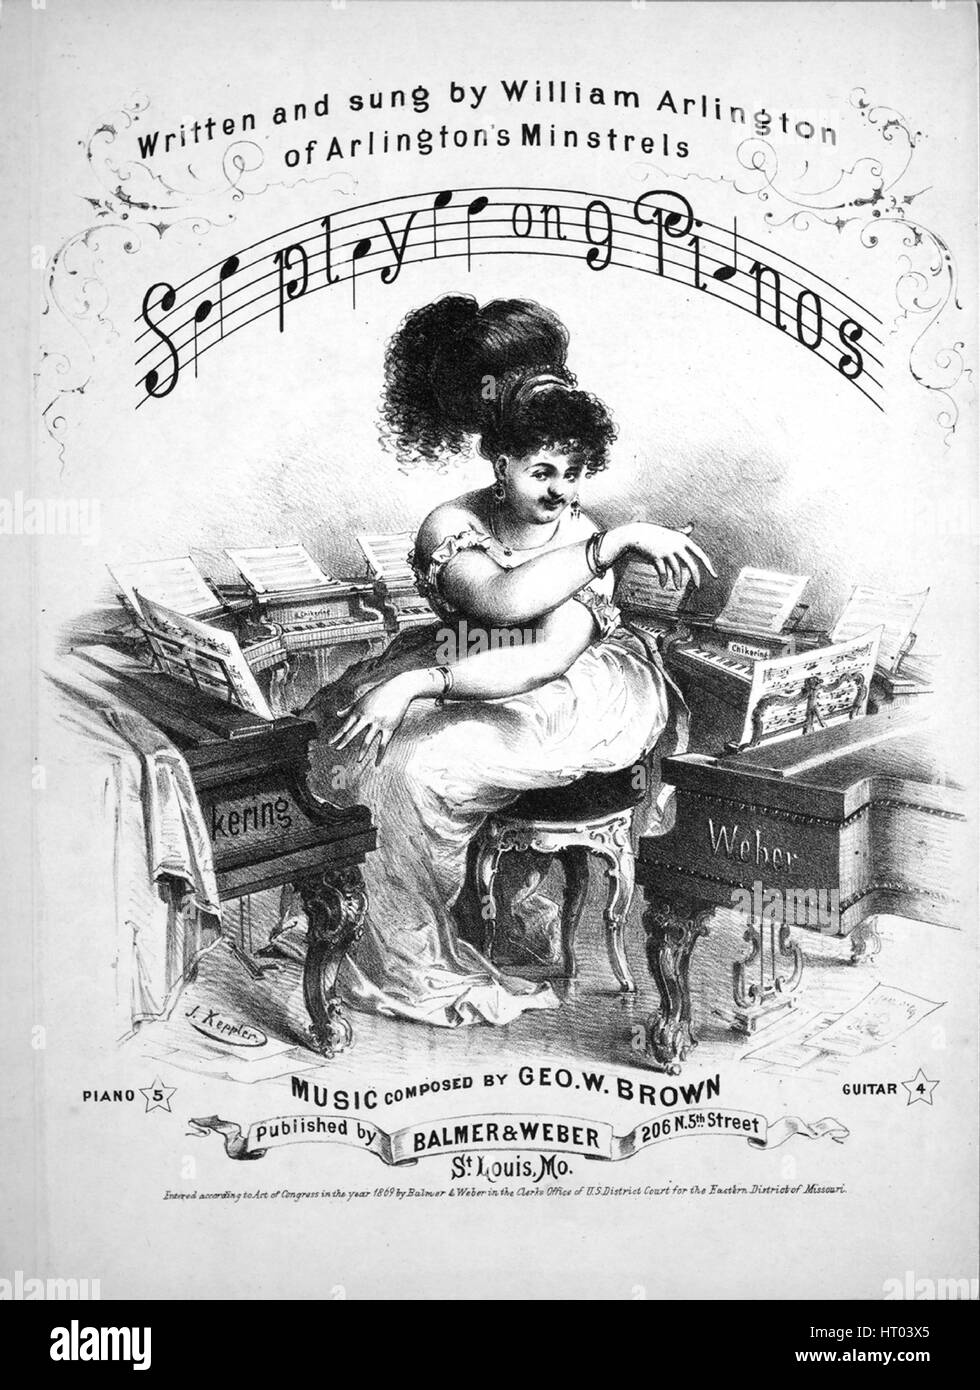 Sheet Music Notes On Old Stock Photos & Sheet Music Notes On